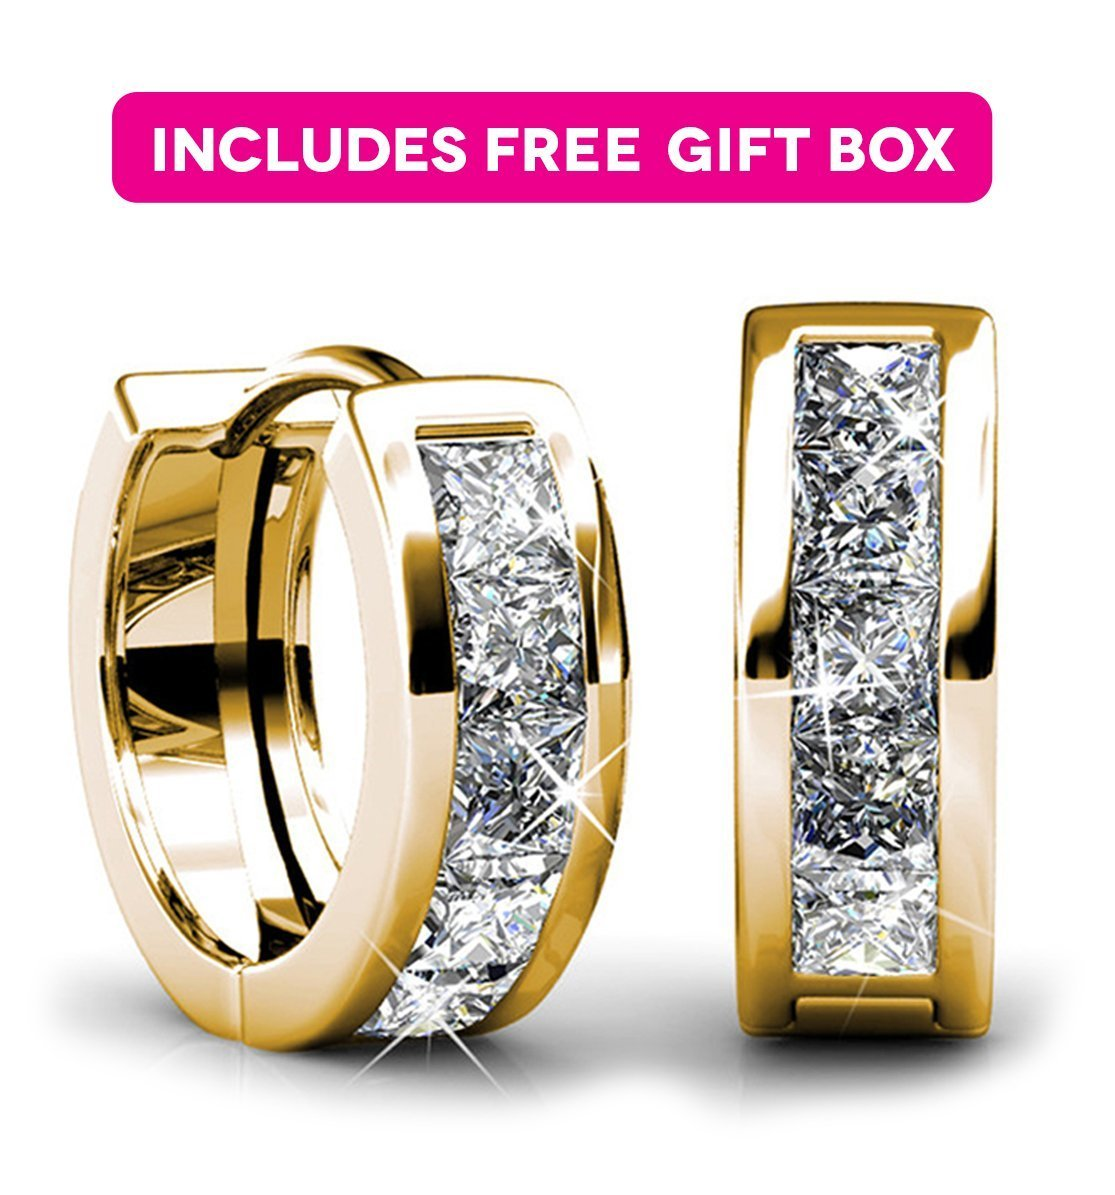 Jade Marie BREATHTAKING Small Gold Huggie Hoop Earrings, 18k Yellow Gold Plated Tiny Hoops with Princess Cut Swarovski Crystals, Mini Hoop Hypoallergenic Earrings for Women, Gifts for Girls,